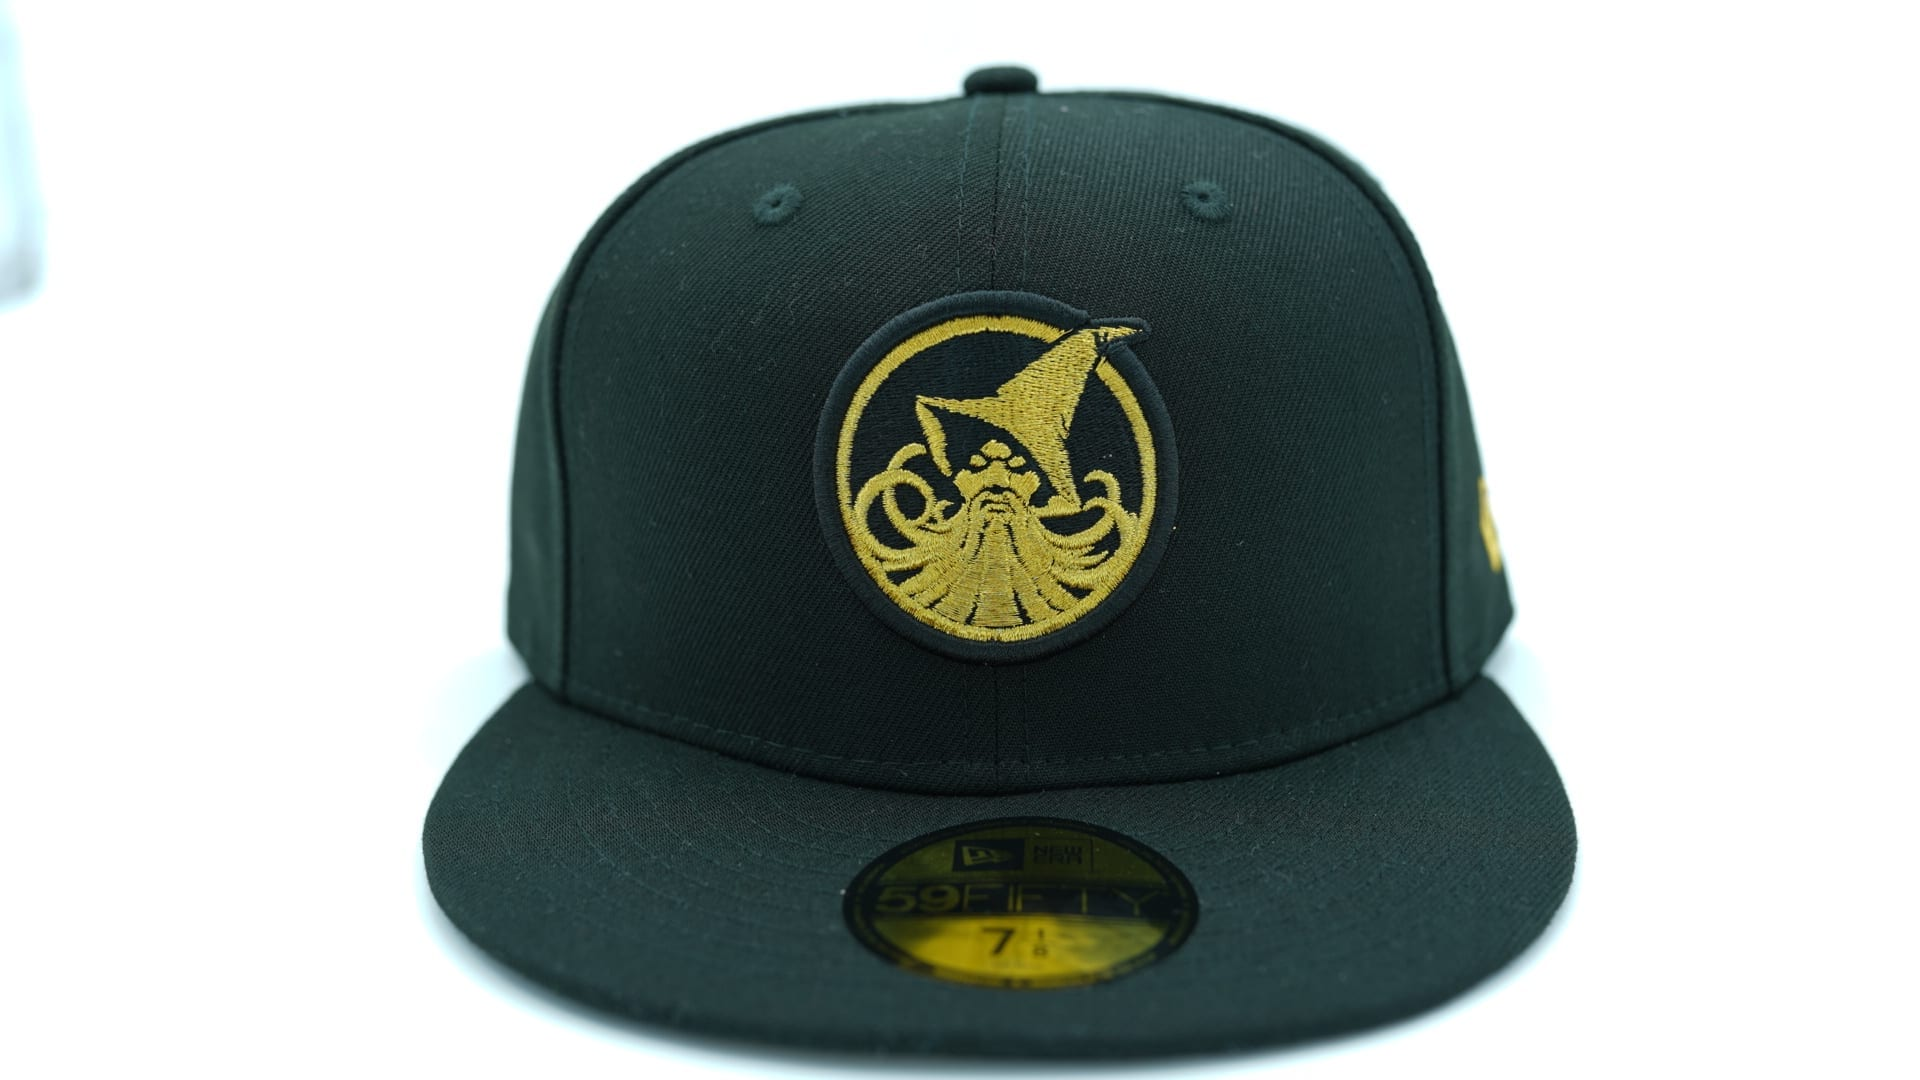 USA High Crown Fitted Golden State Warriors Fitted Cap